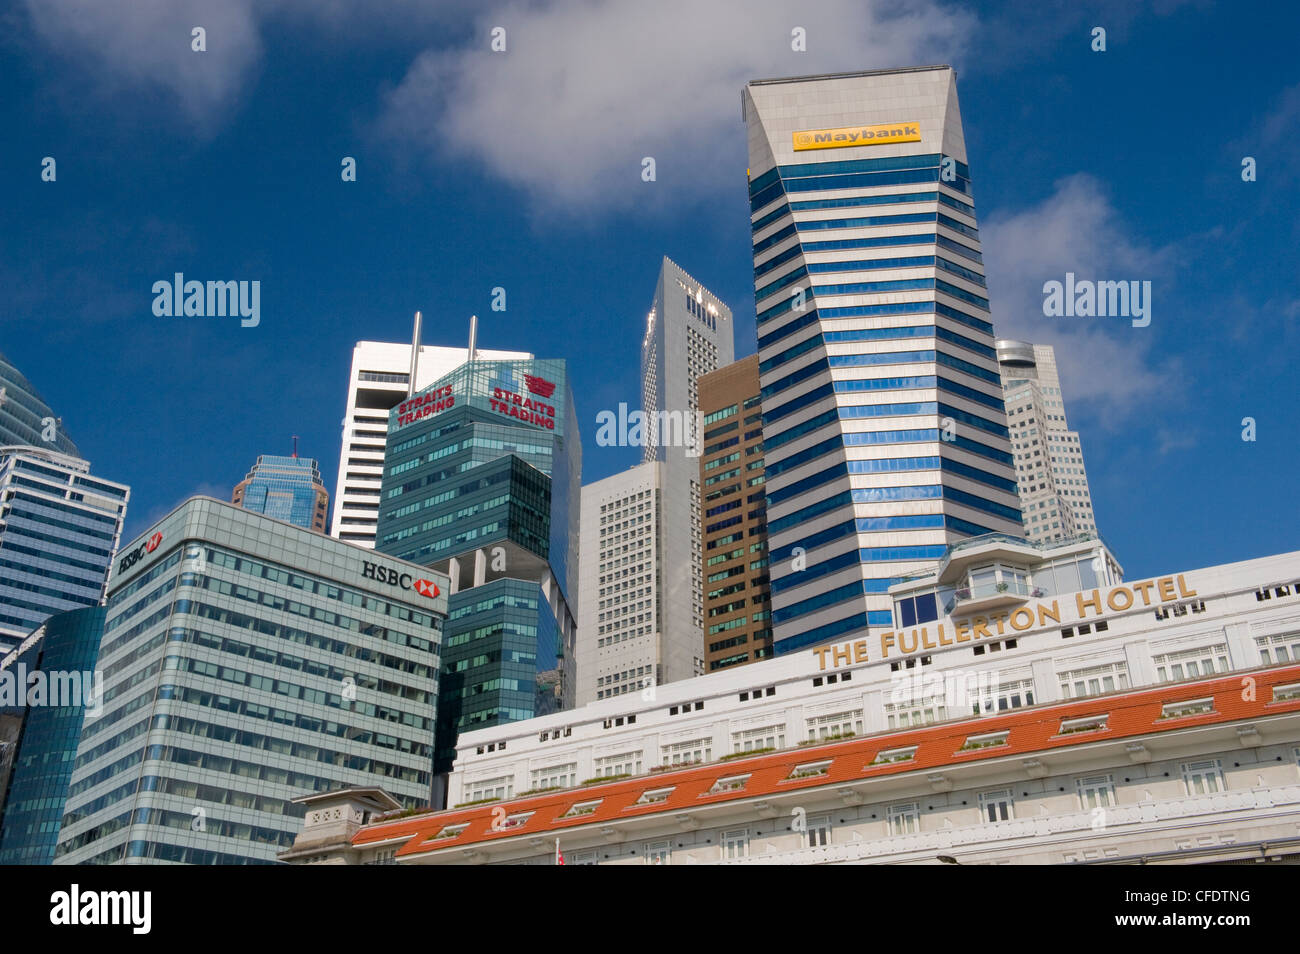 The Fullerton Hotel on the banks of Singapore River, Singapore, Southeast Asia, Asia - Stock Image